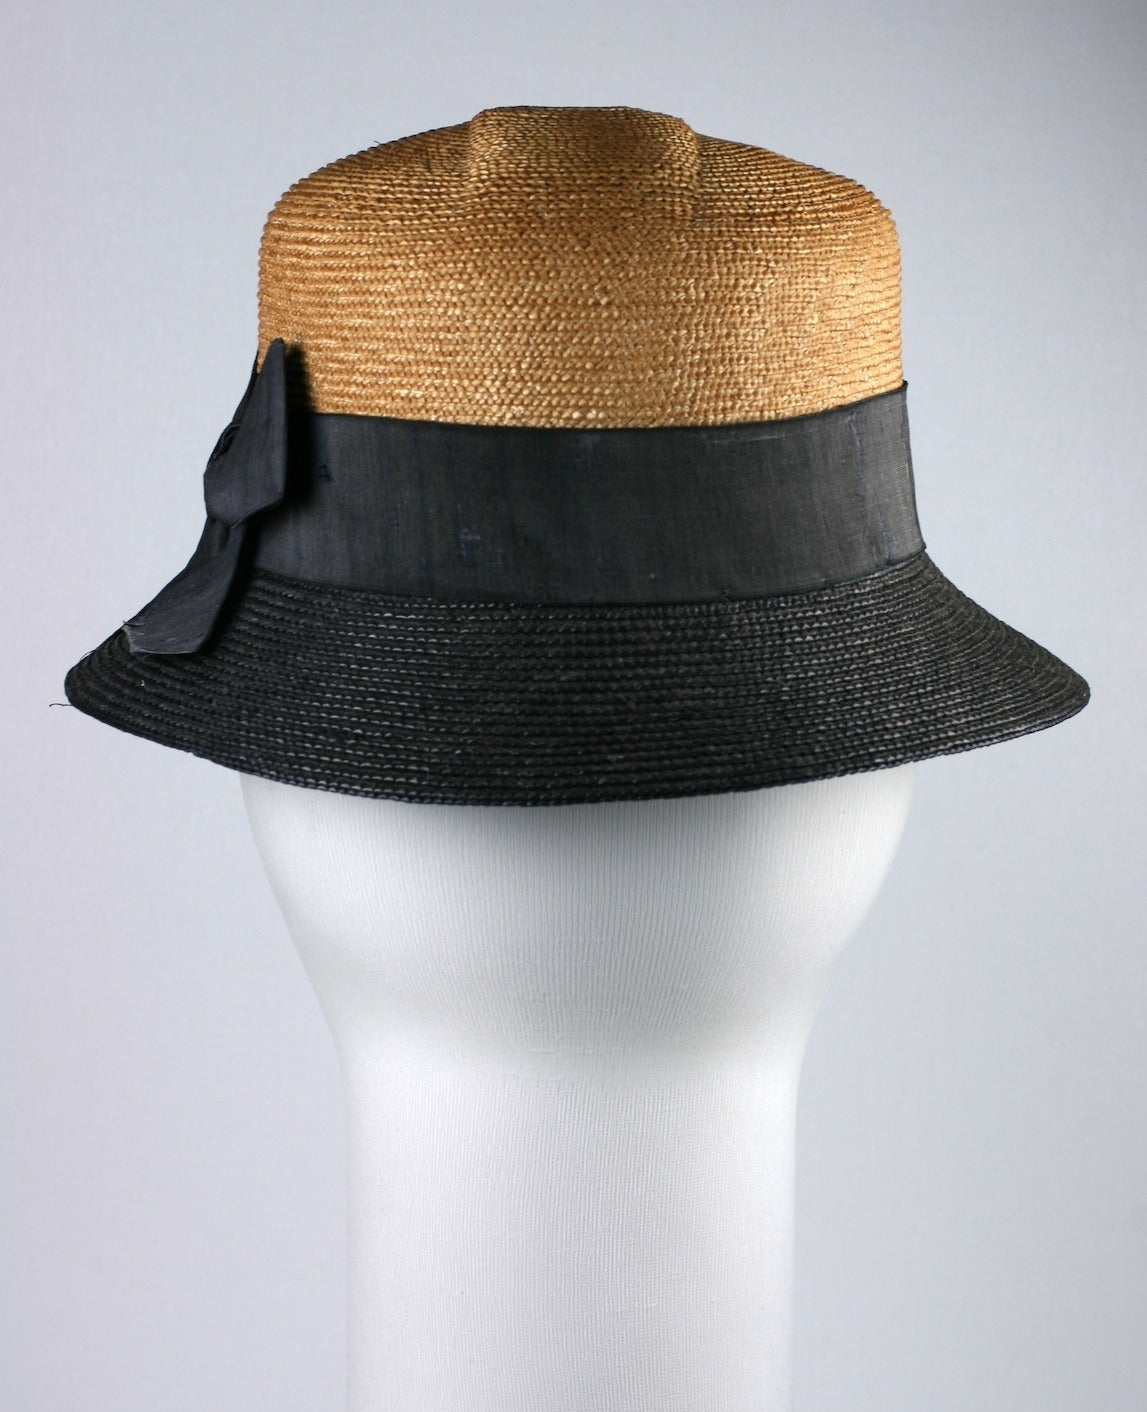 Early 2 Toned Straw Hat,